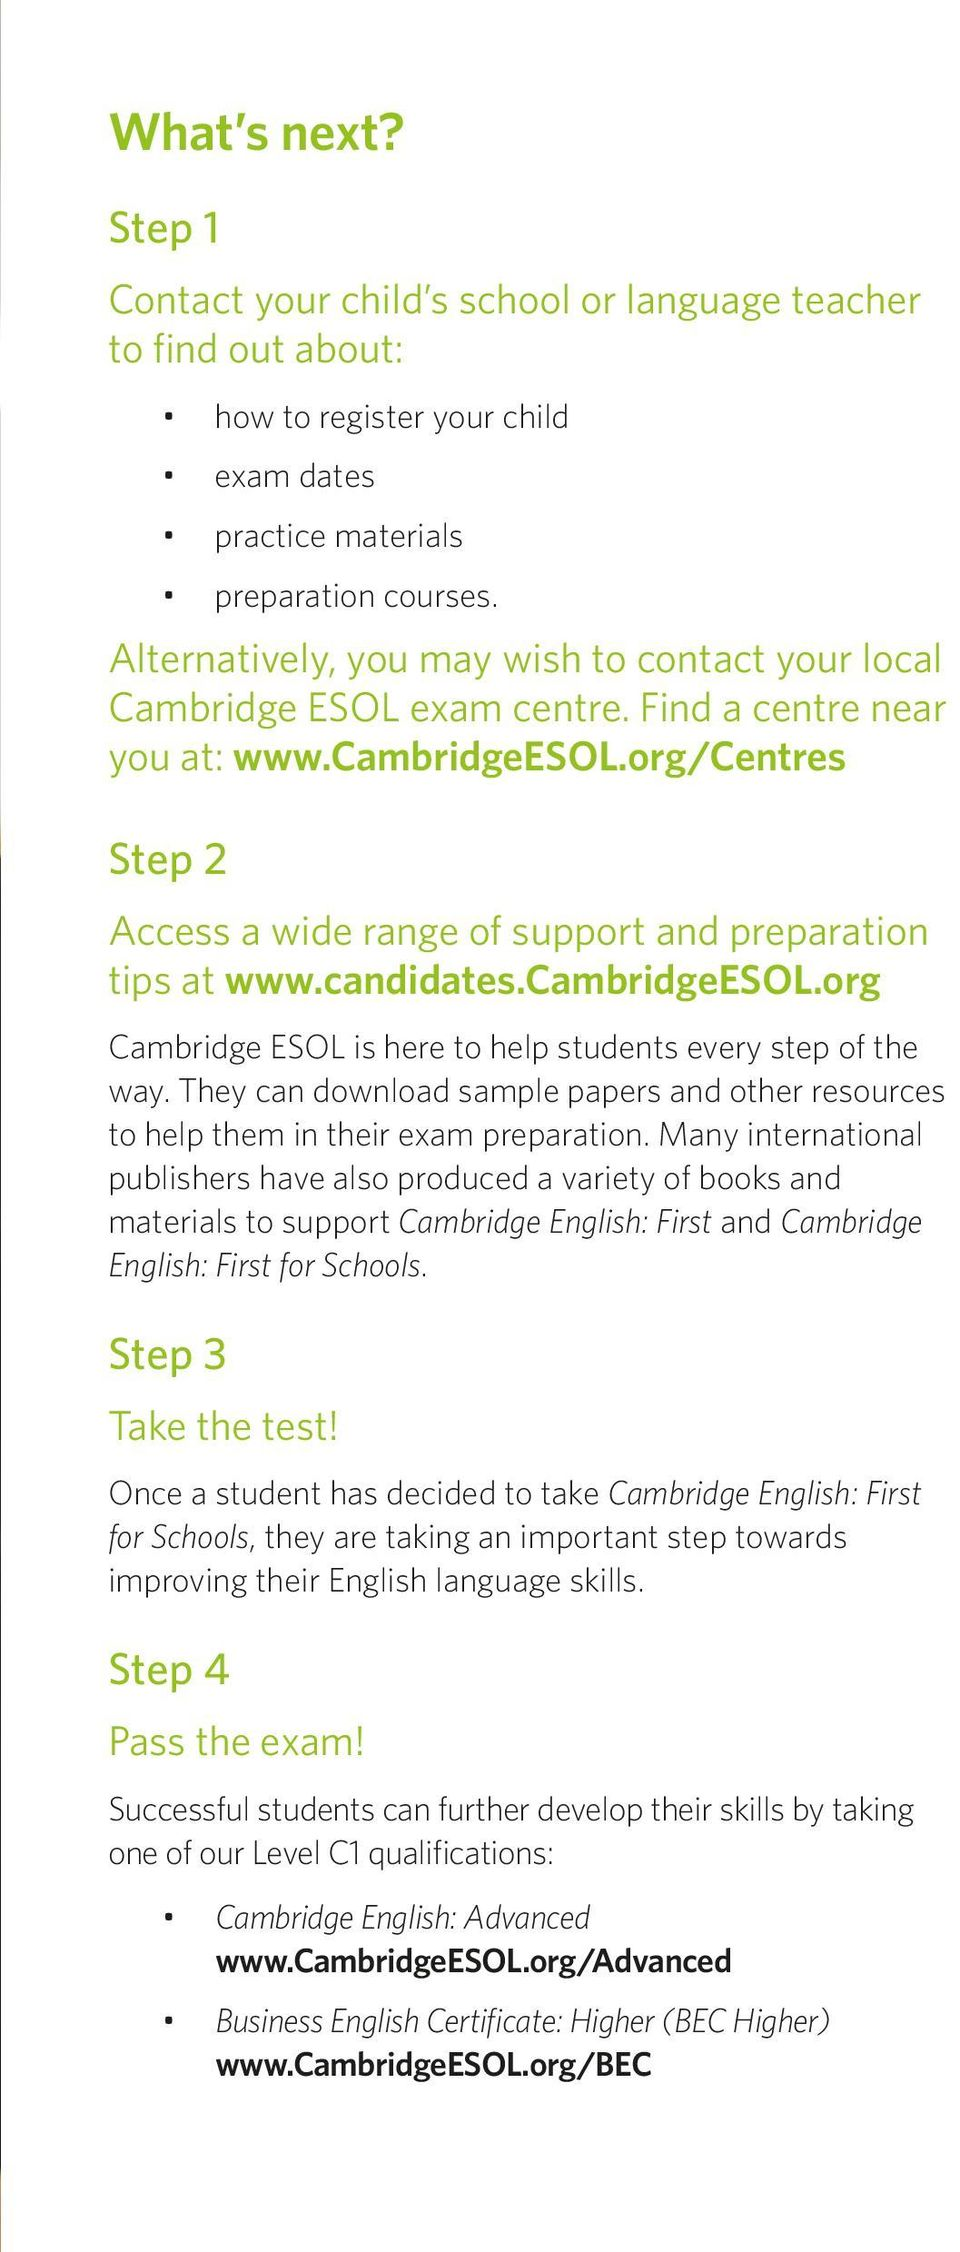 org/centres Step 2 Access a wide range of support and preparation tips at www.candidates.cambridgeesol.org Cambridge ESOL is here to help students every step of the way.